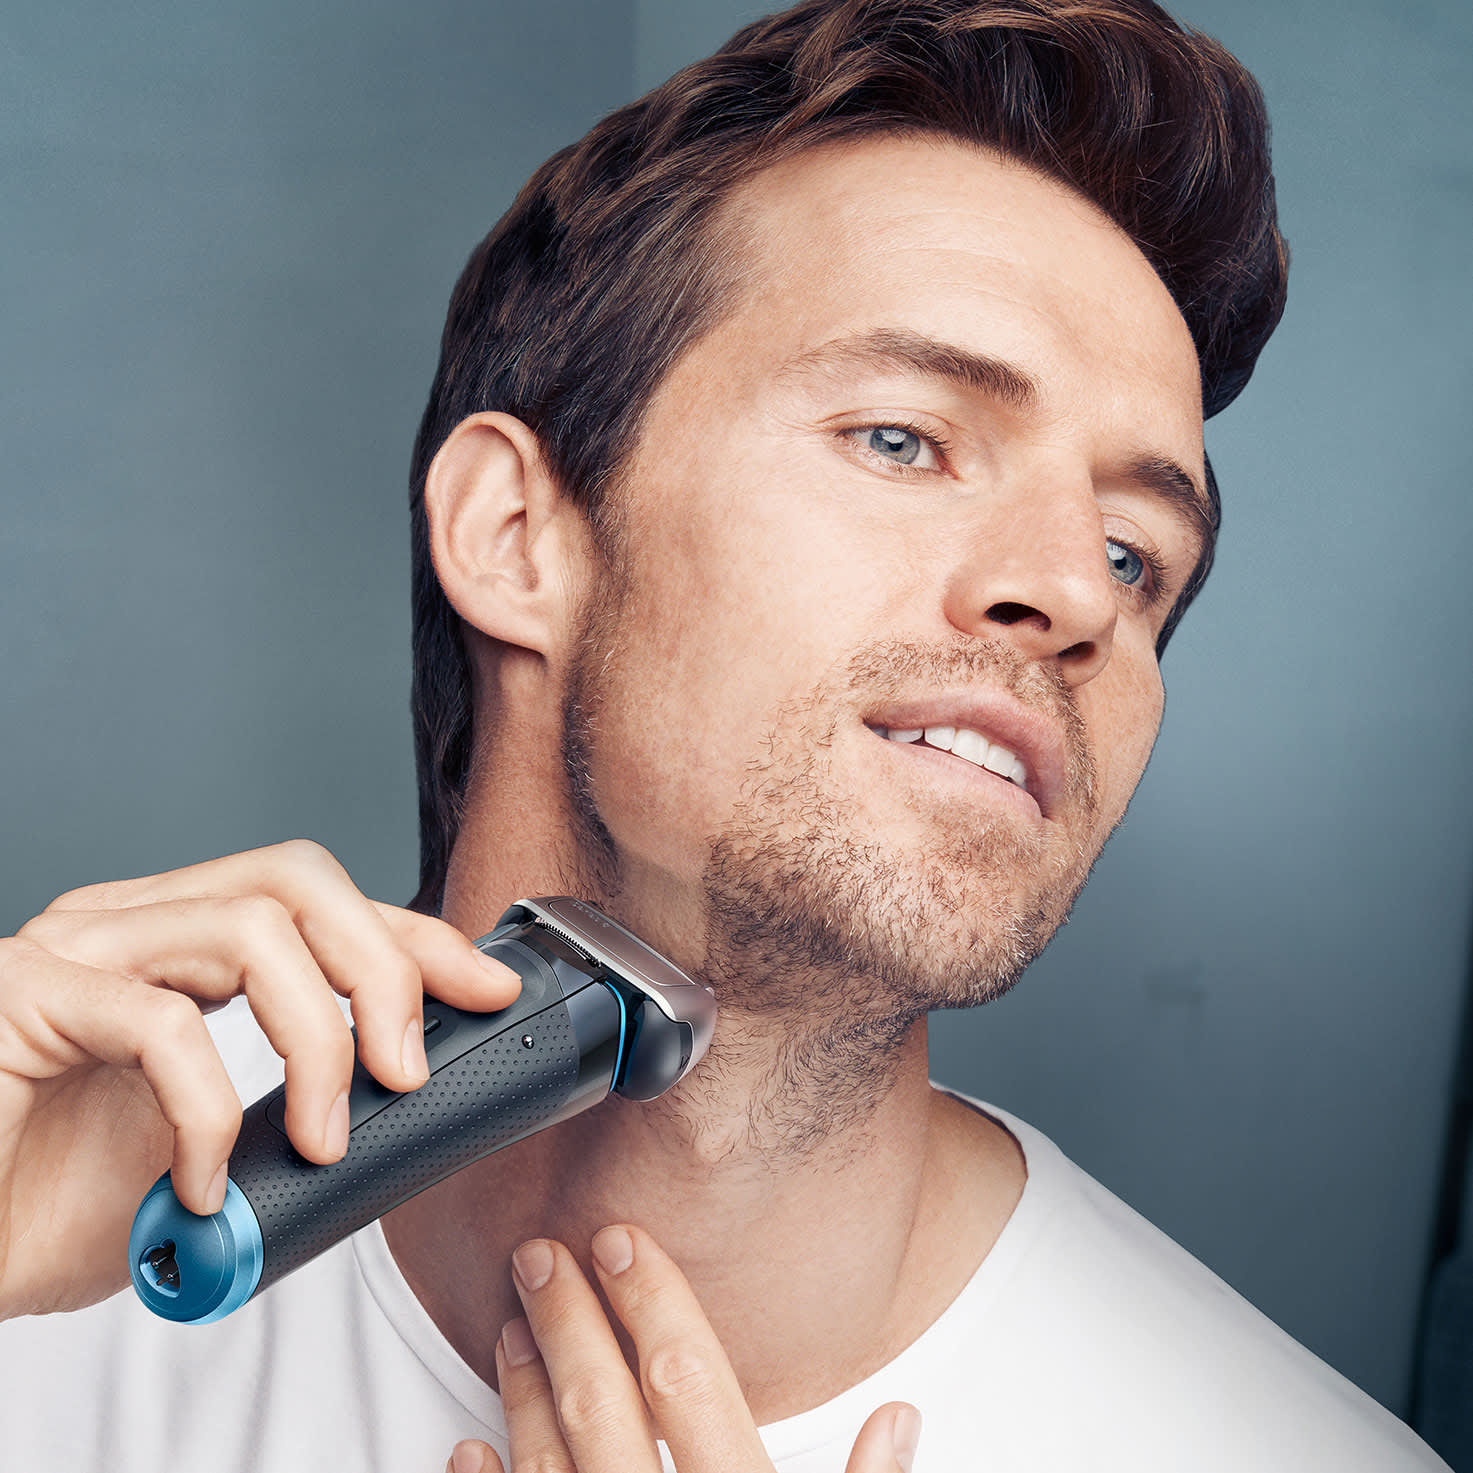 Series 8 8365cc shaver - in use